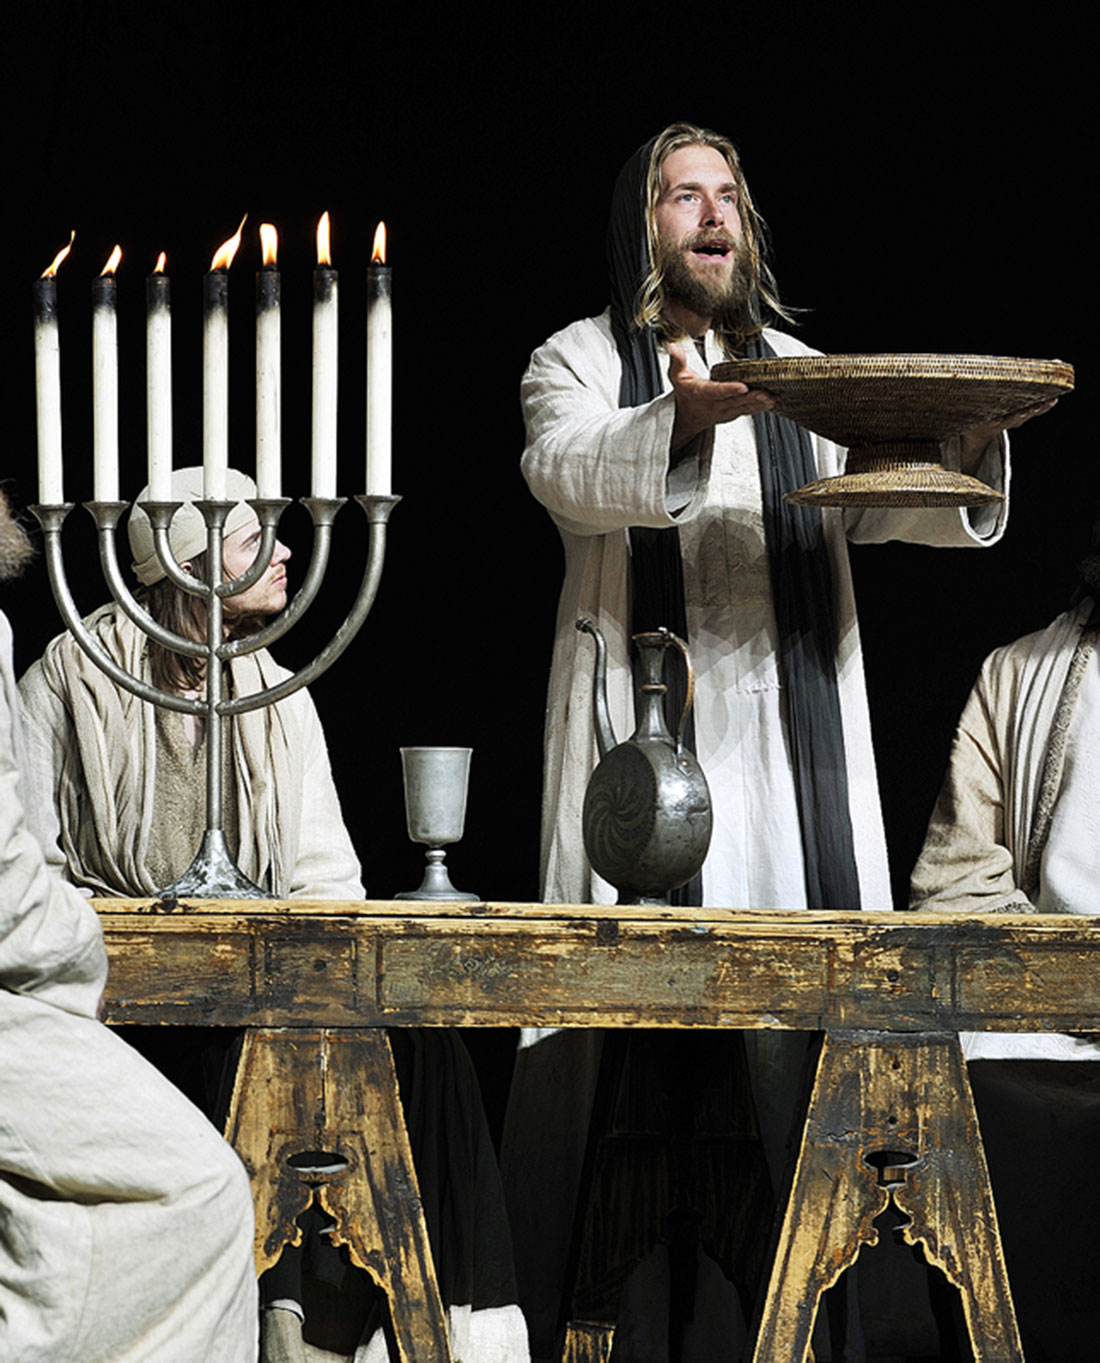 Passion Play of Oberammergau 2022 The Last Supper